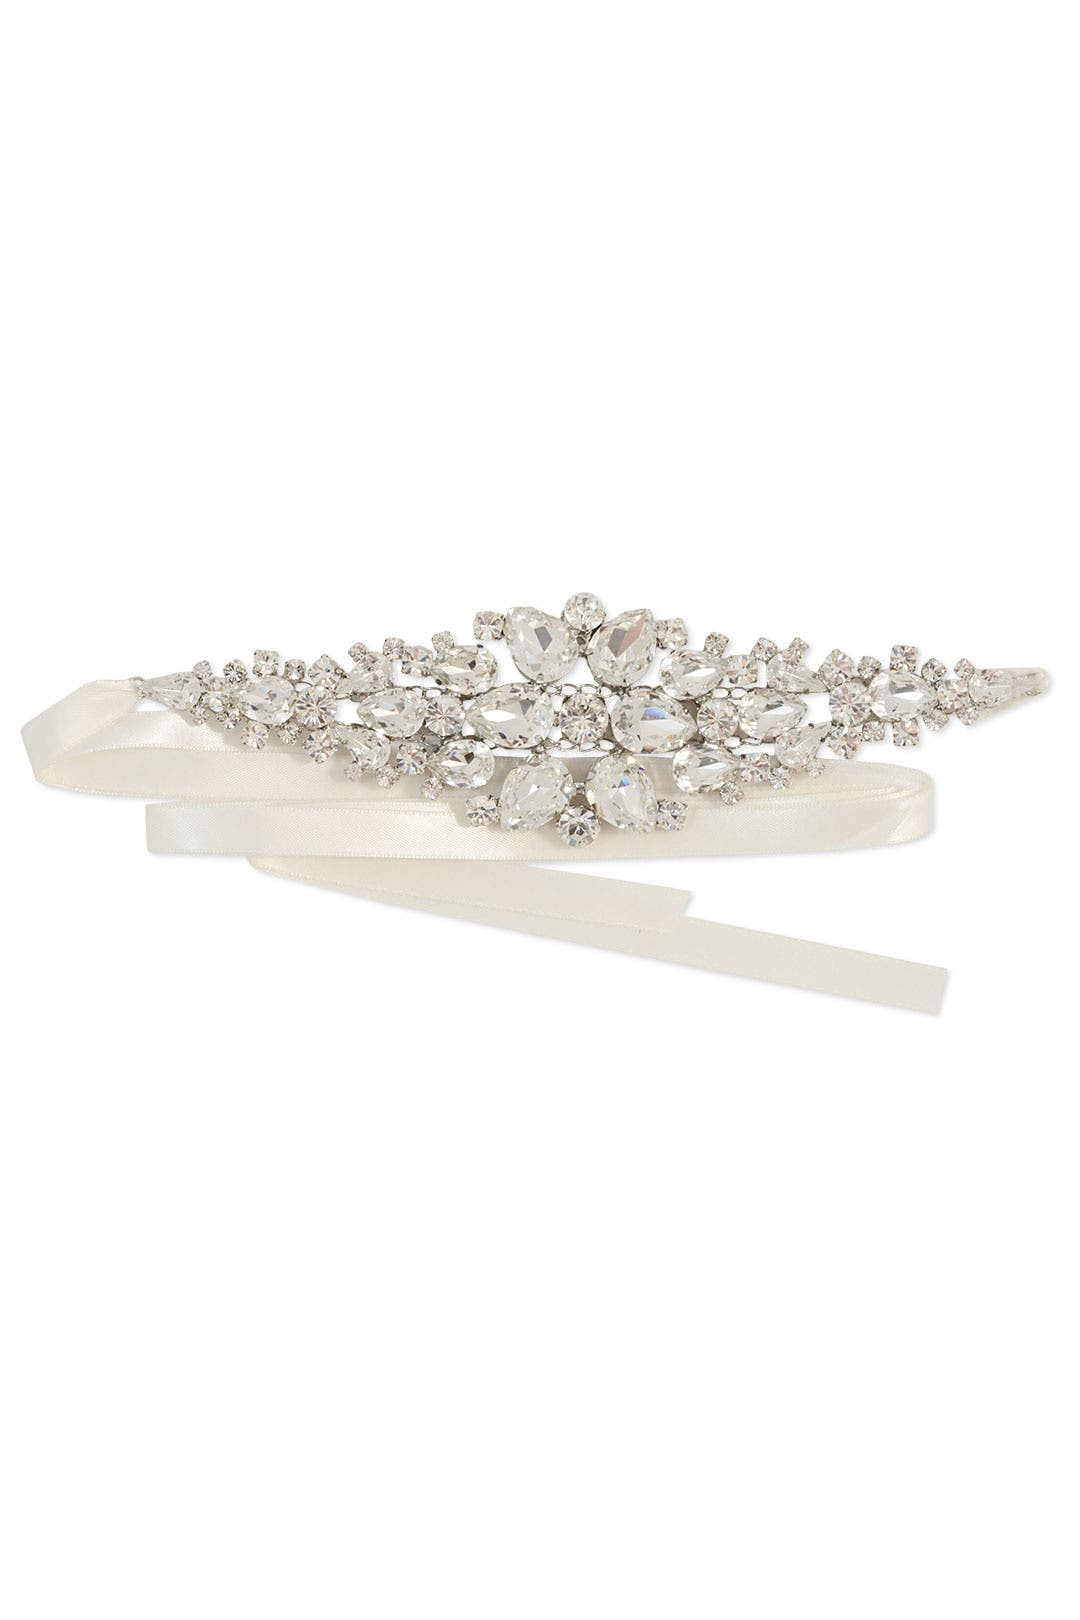 Something Crystal Bridal Belt by RTR Bridal Accessories